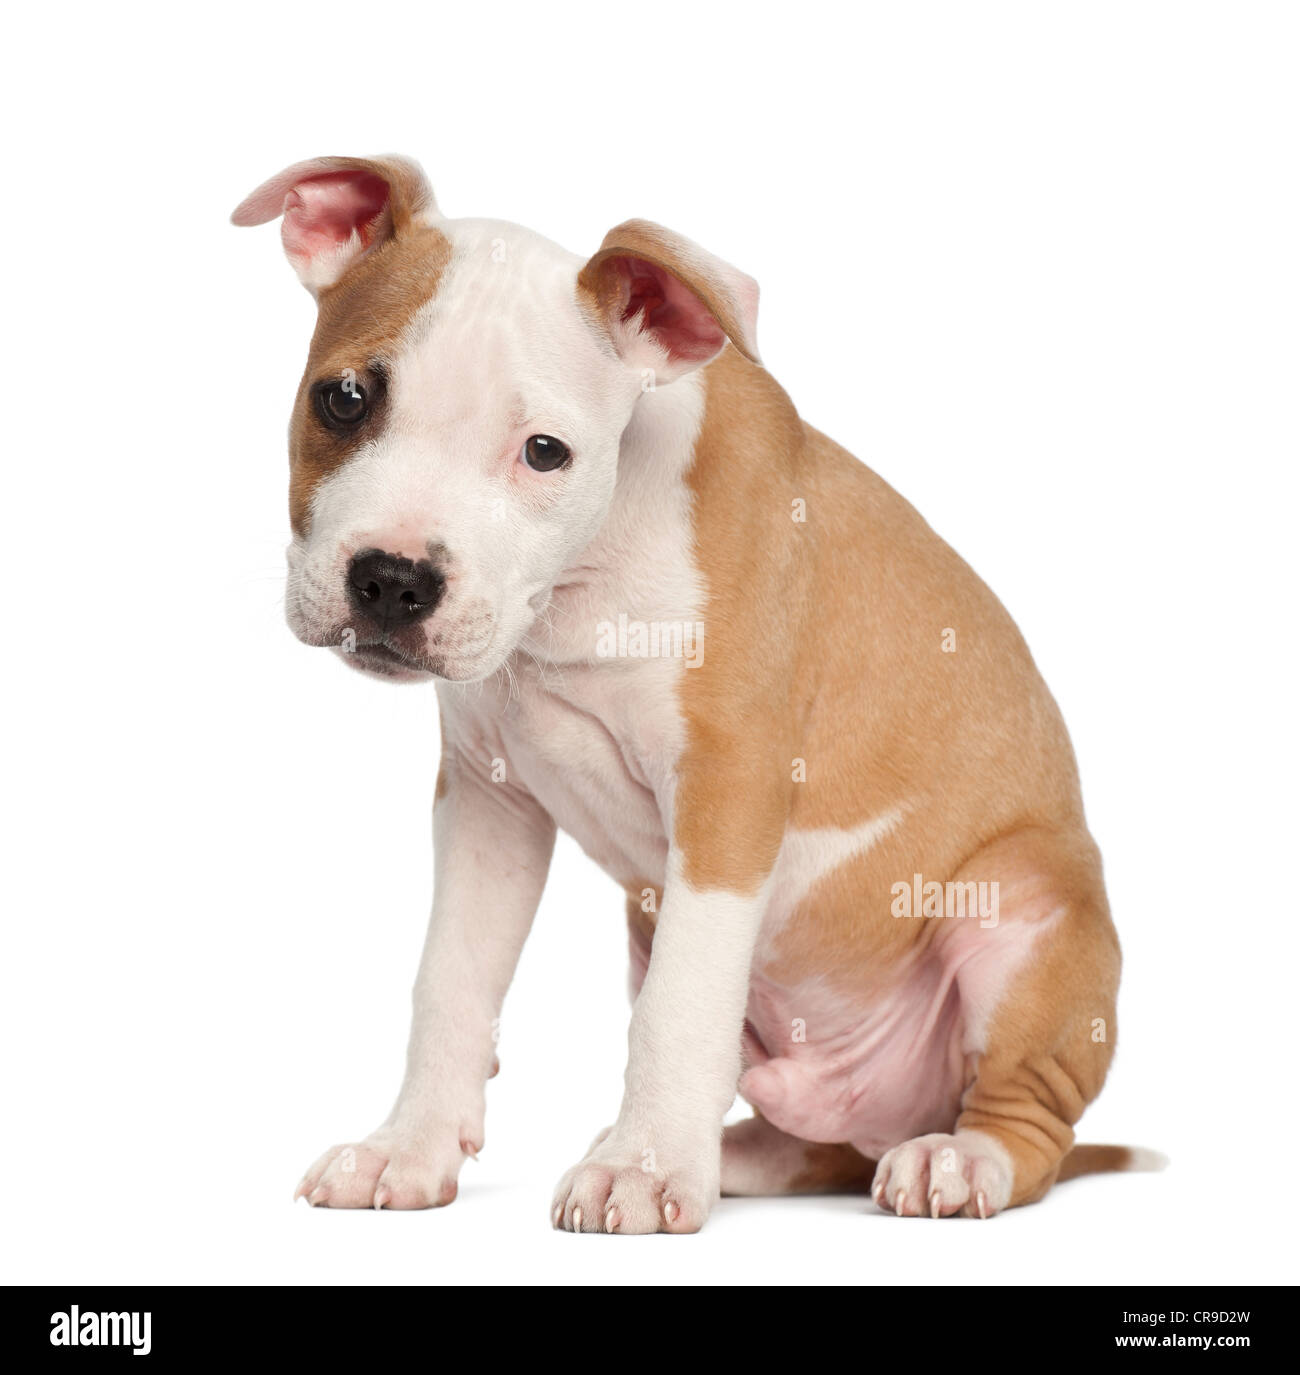 American Staffordshire Terrier puppy, 2 months old, standing